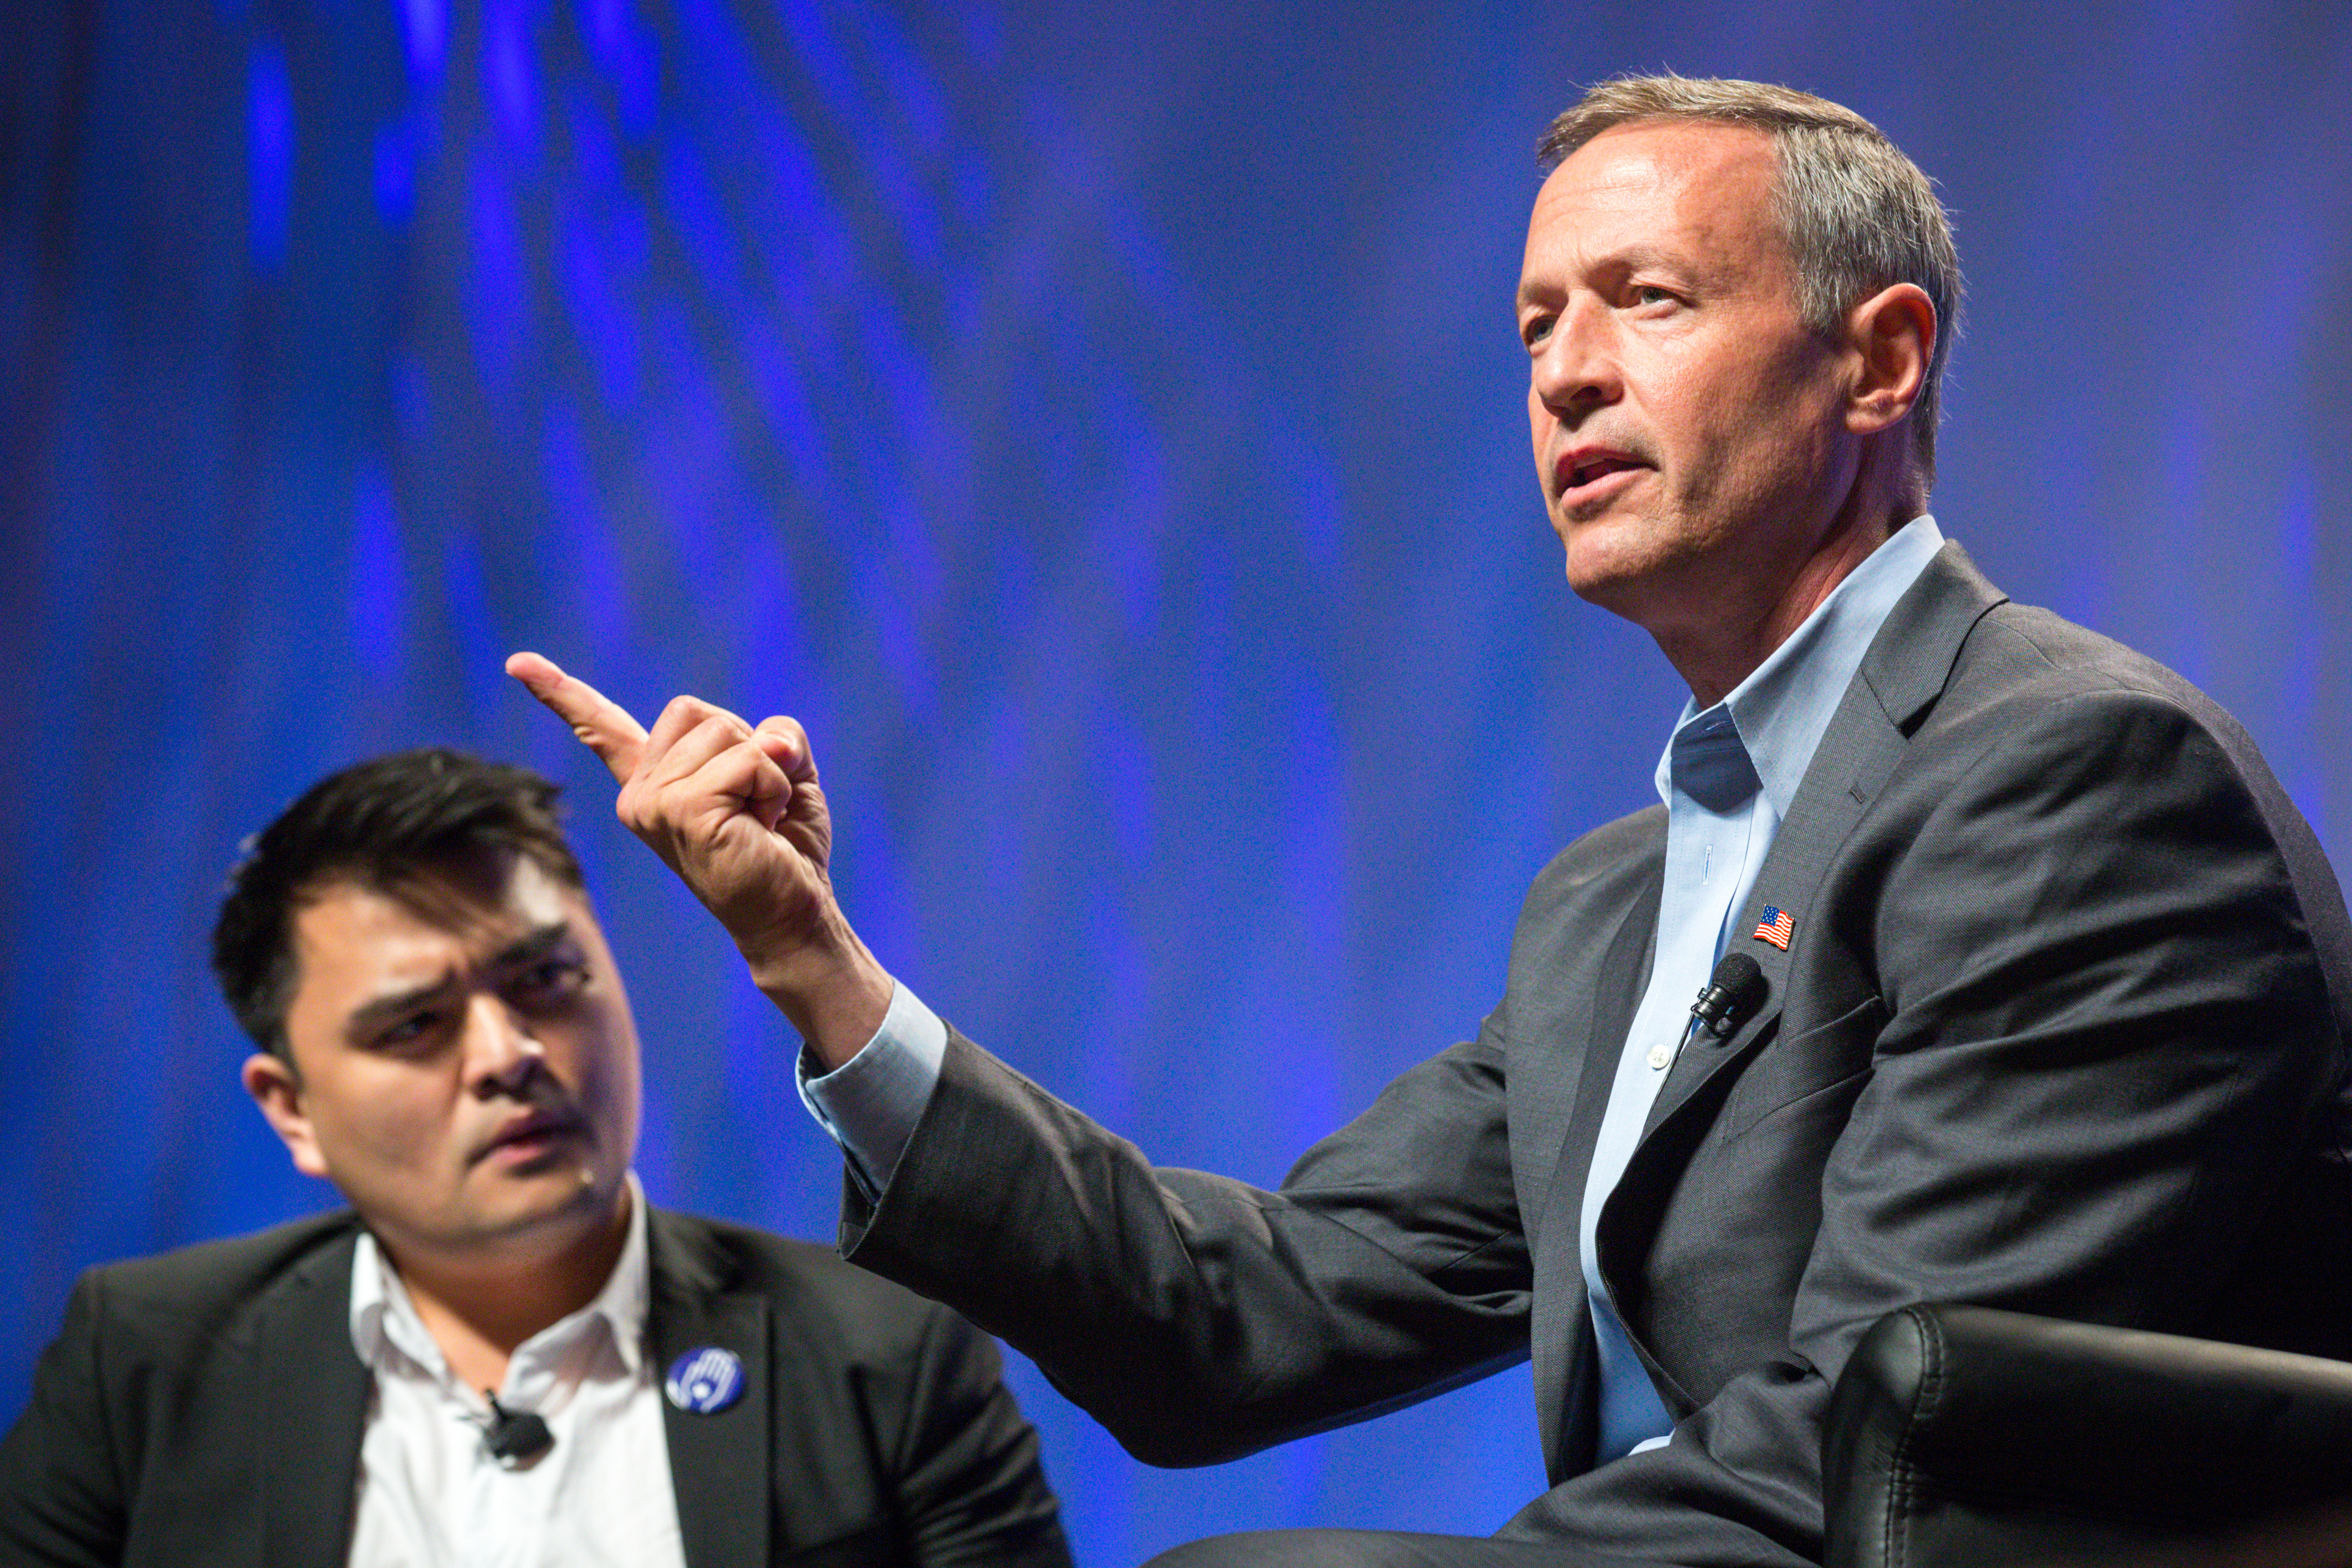 Former Gov. Martin O'Malley at Netroots Nation, before being interrupted by demonstrators yelling 'Black Lives Matter.' (Photo by Charlie Leight/Getty Images)